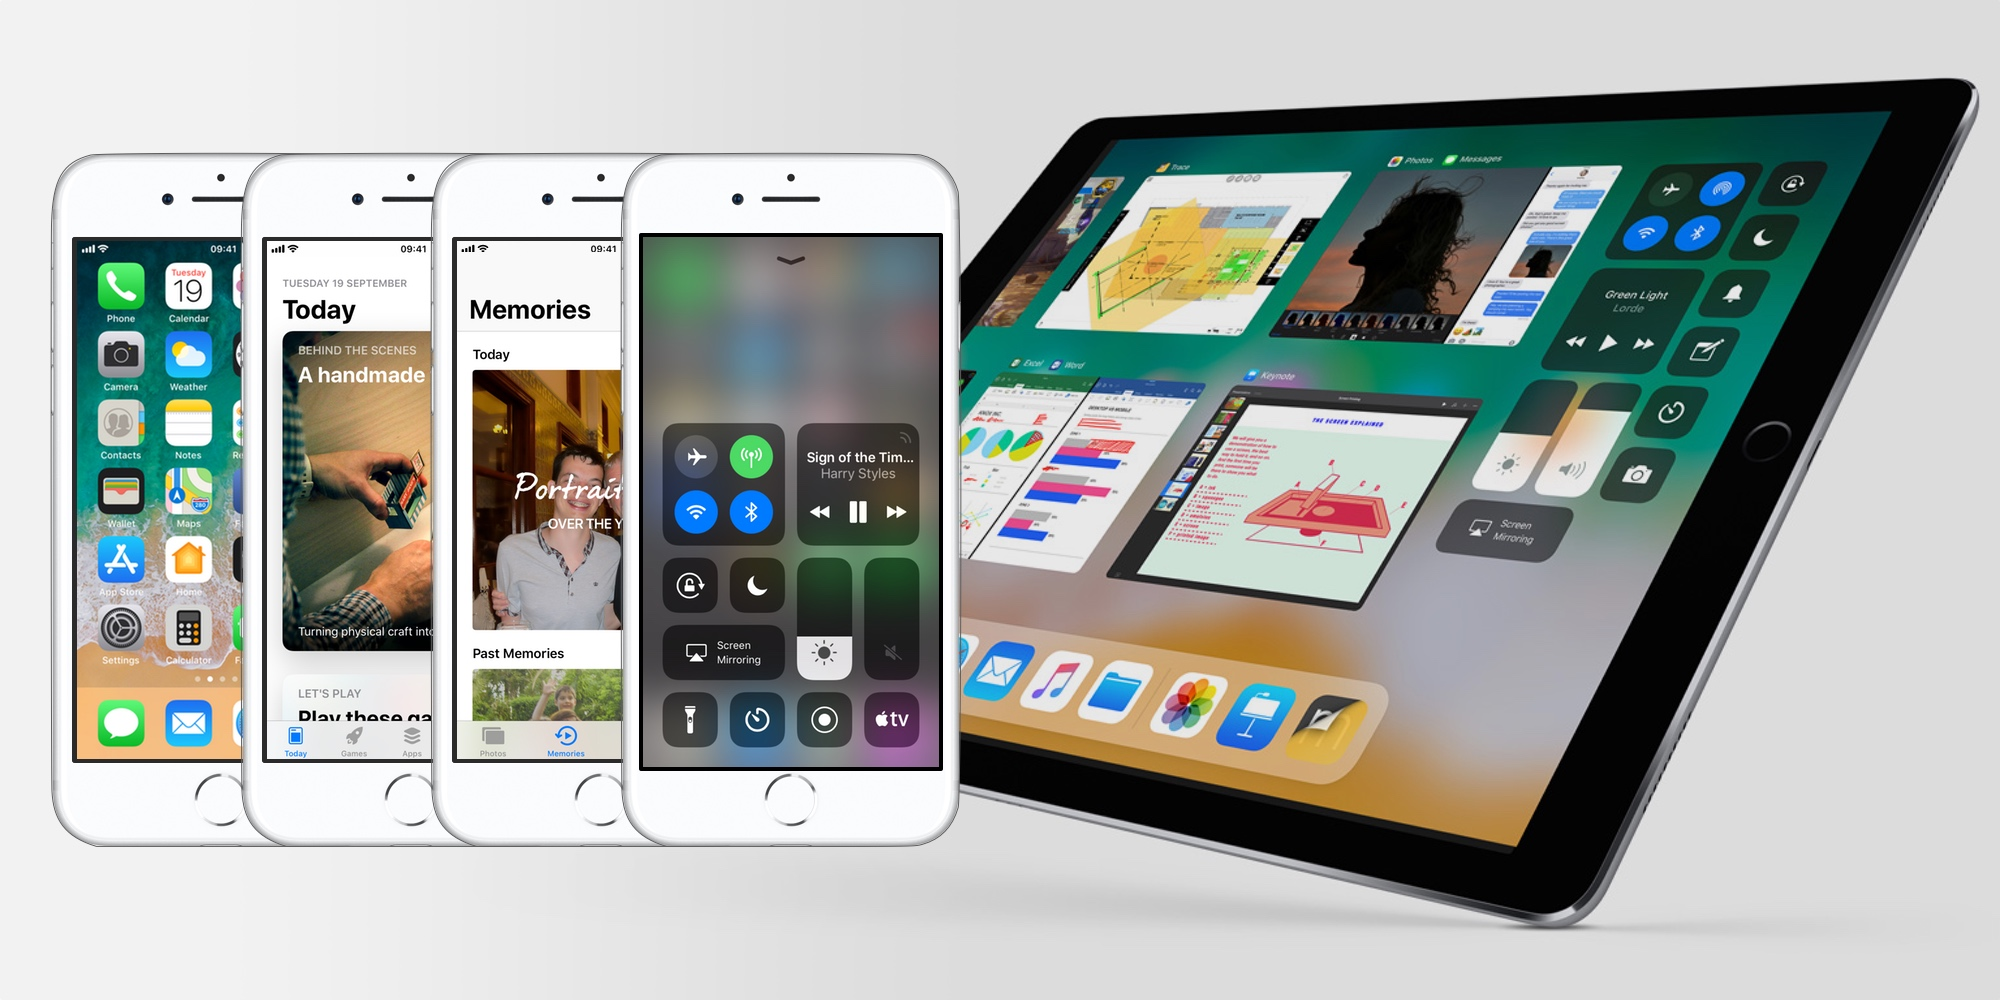 Apple releases iOS 11 for iPhone and iPad, here's everything